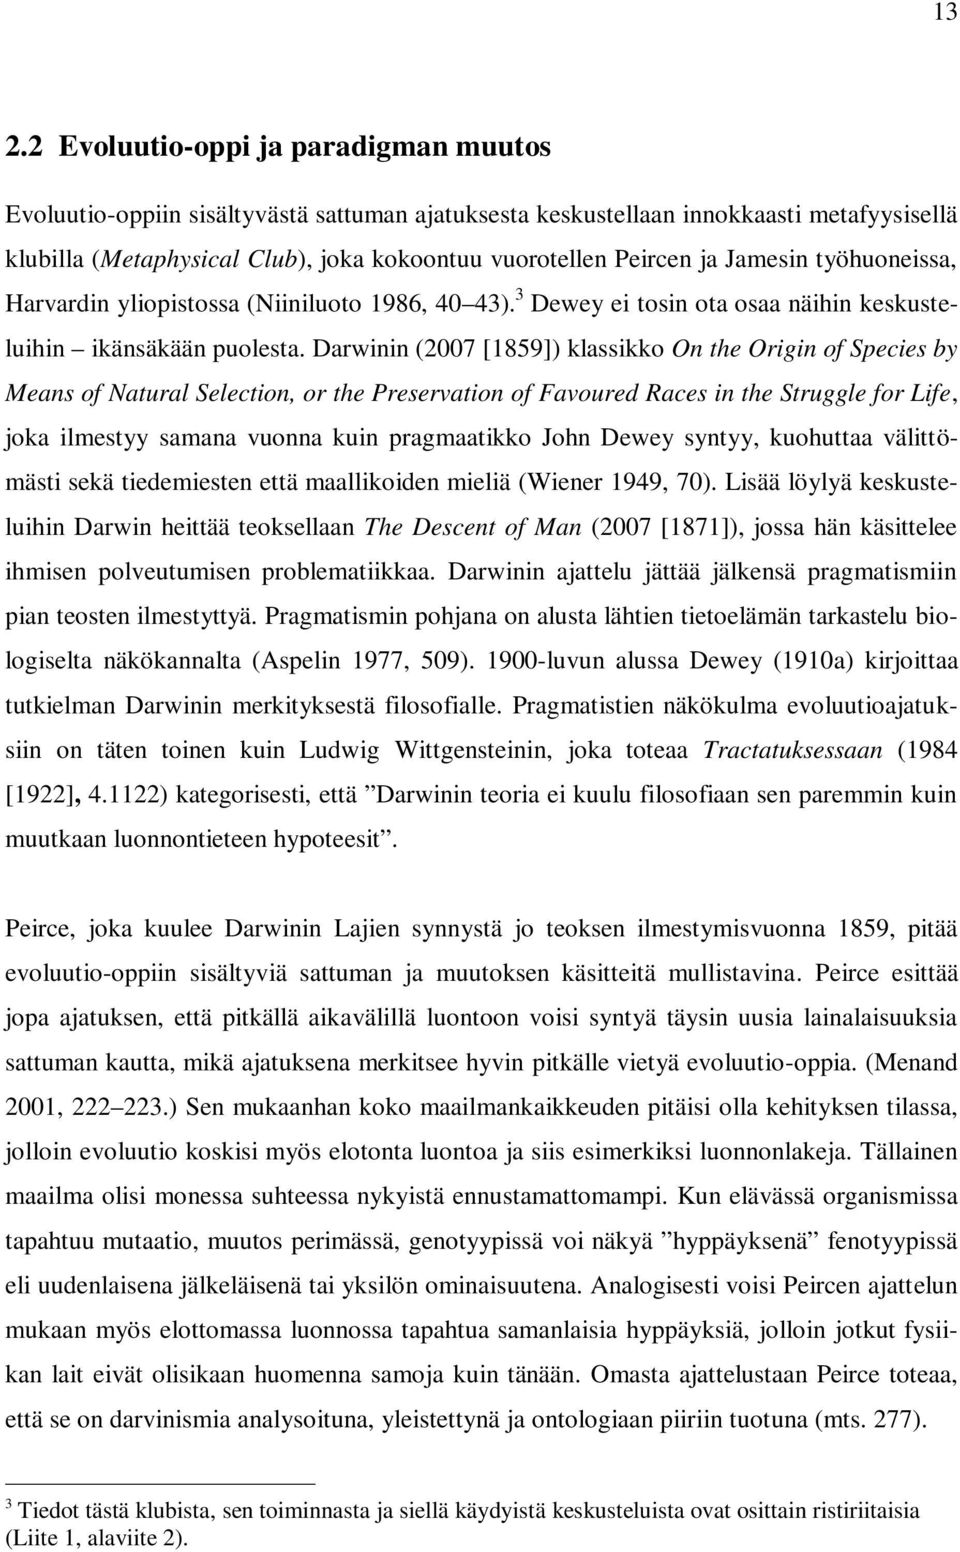 Darwinin (2007 [1859]) klassikko On the Origin of Species by Means of Natural Selection, or the Preservation of Favoured Races in the Struggle for Life, joka ilmestyy samana vuonna kuin pragmaatikko